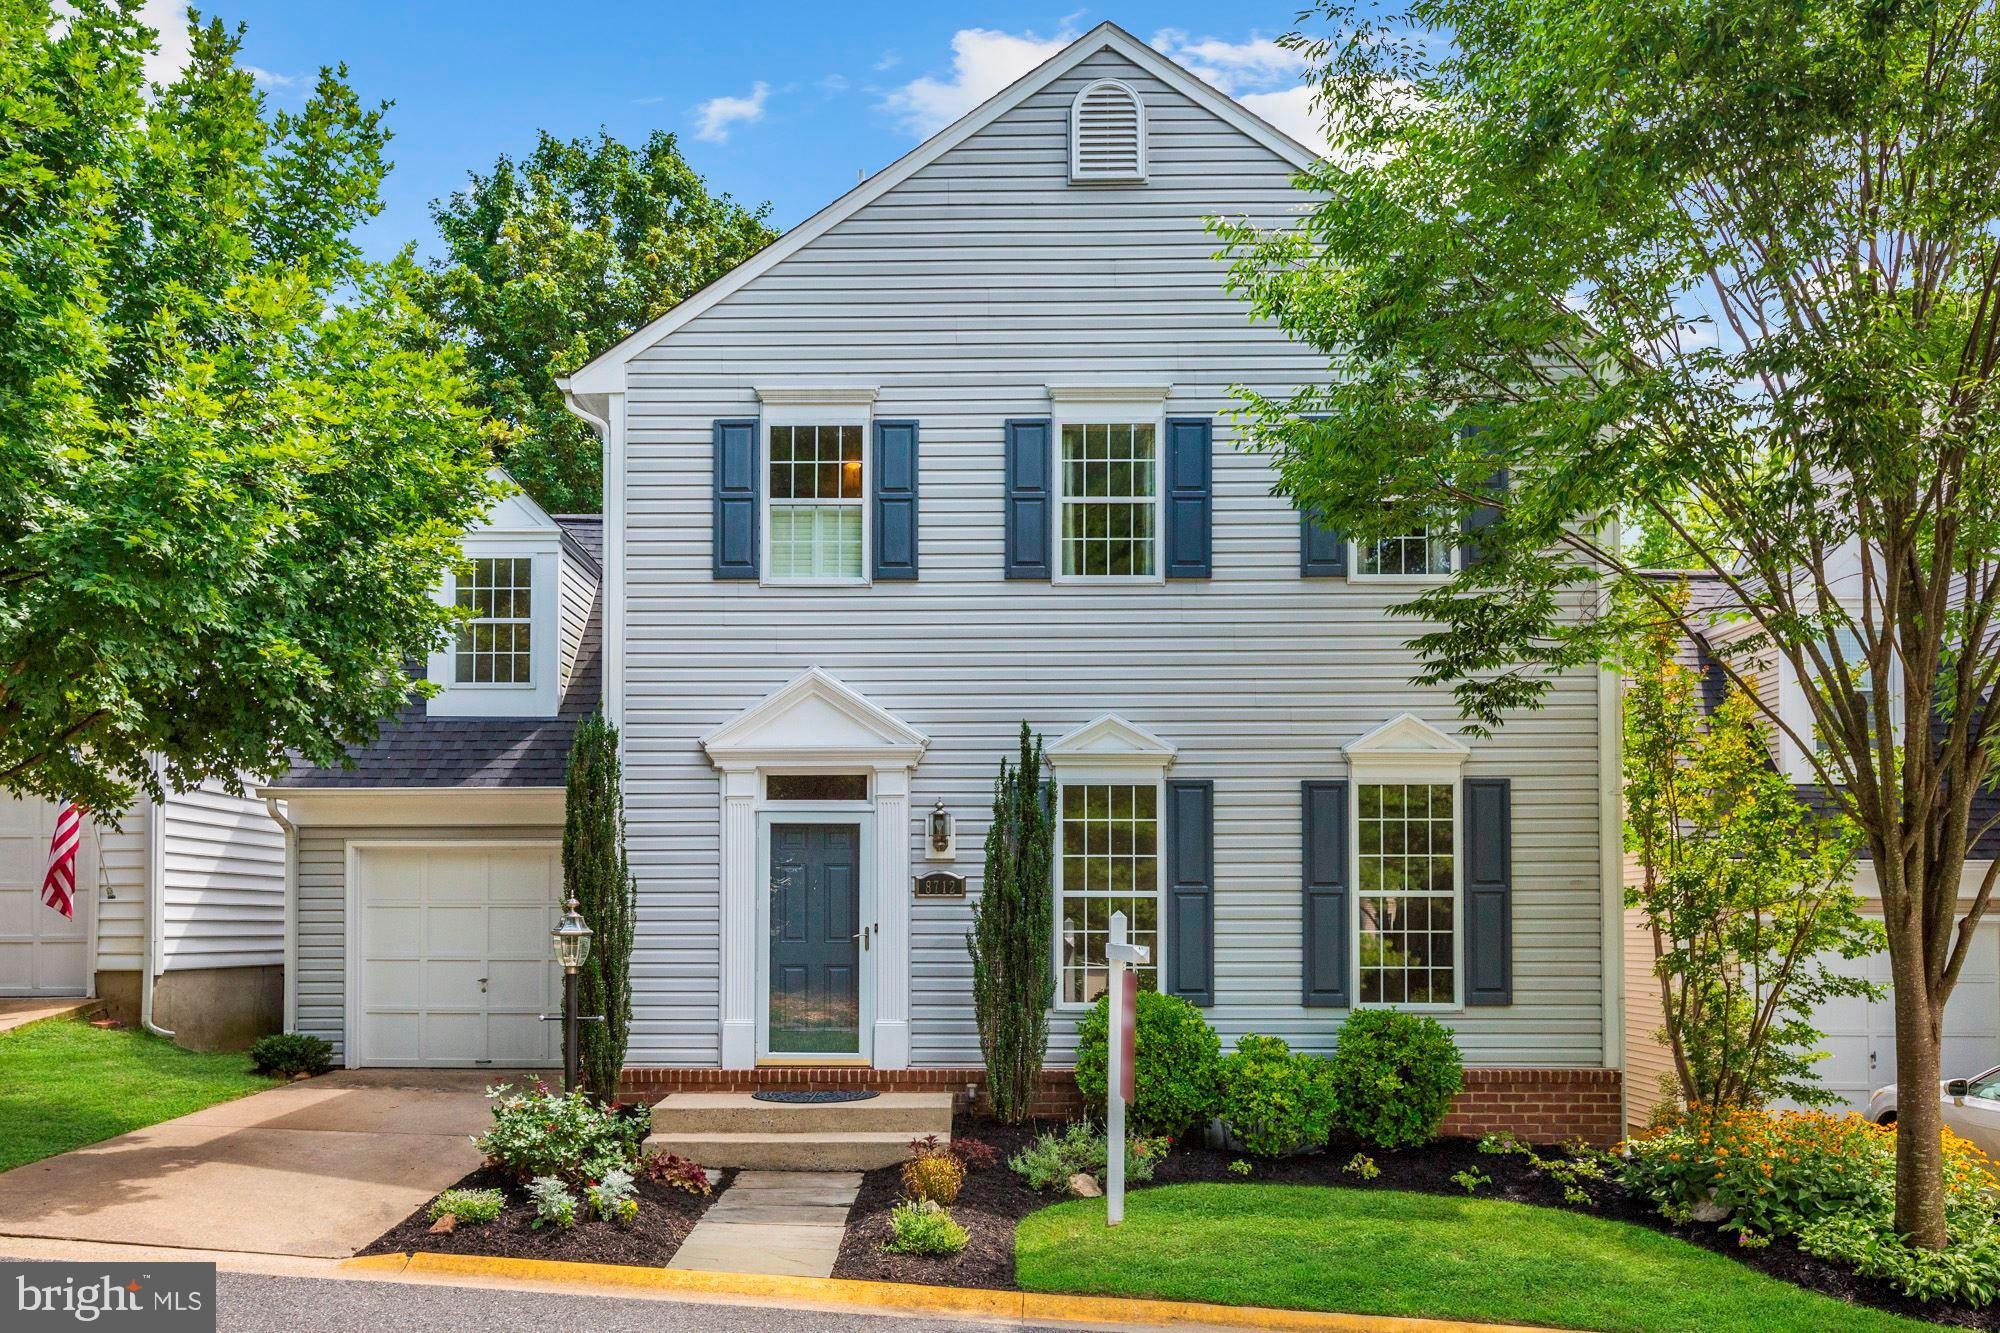 8712 LAUREL VALLEY LANE, GAITHERSBURG, MD 20886